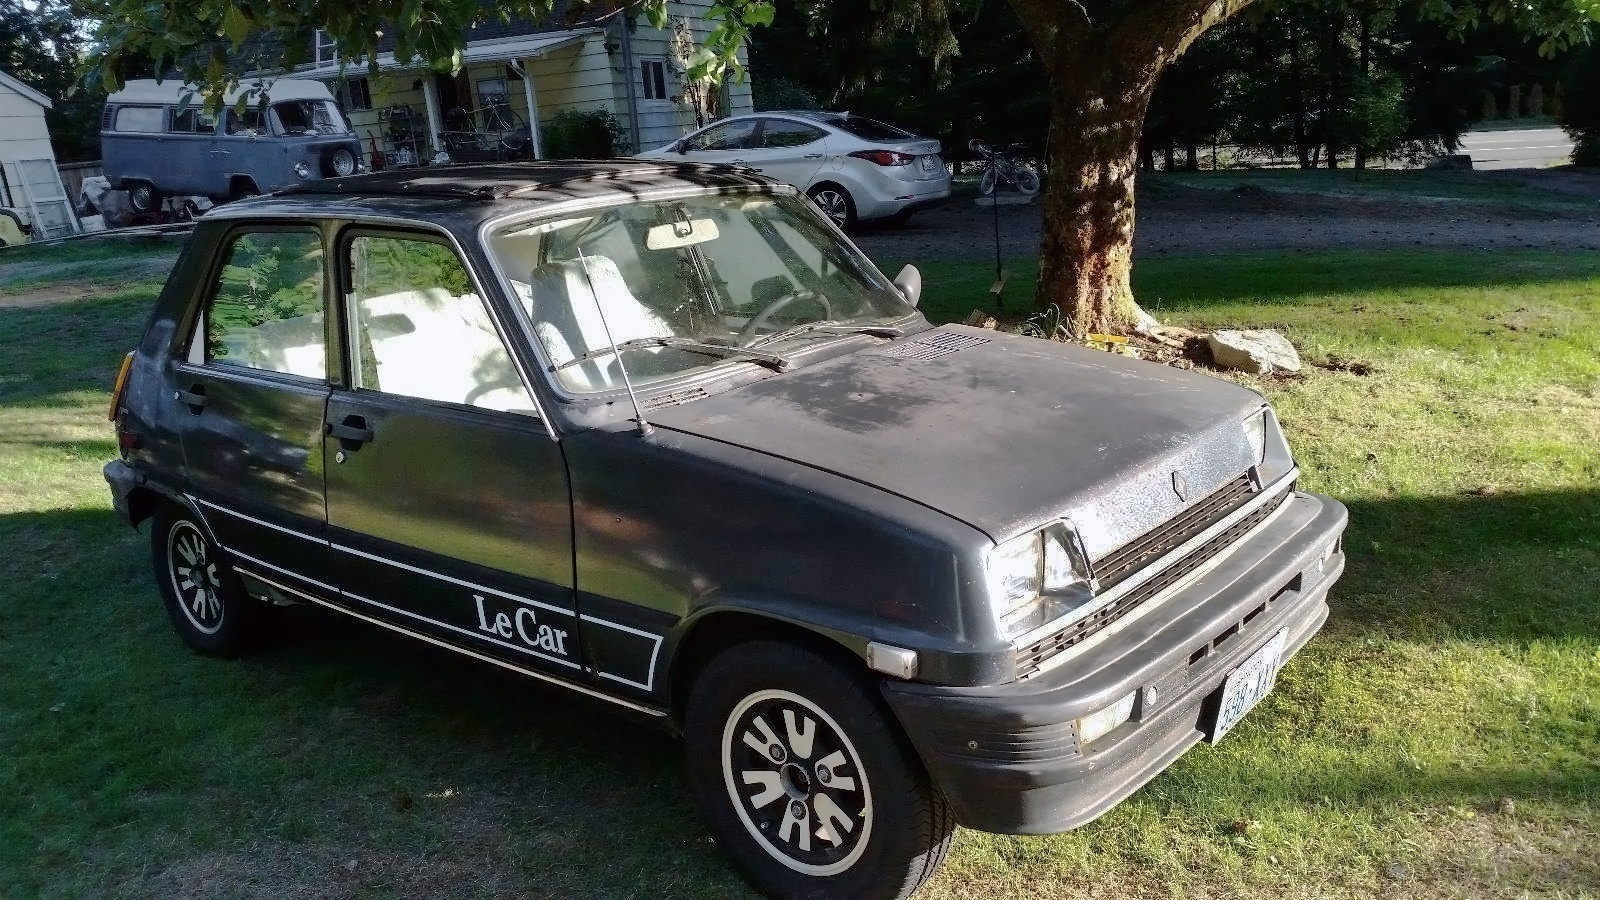 Renault lecar for sale